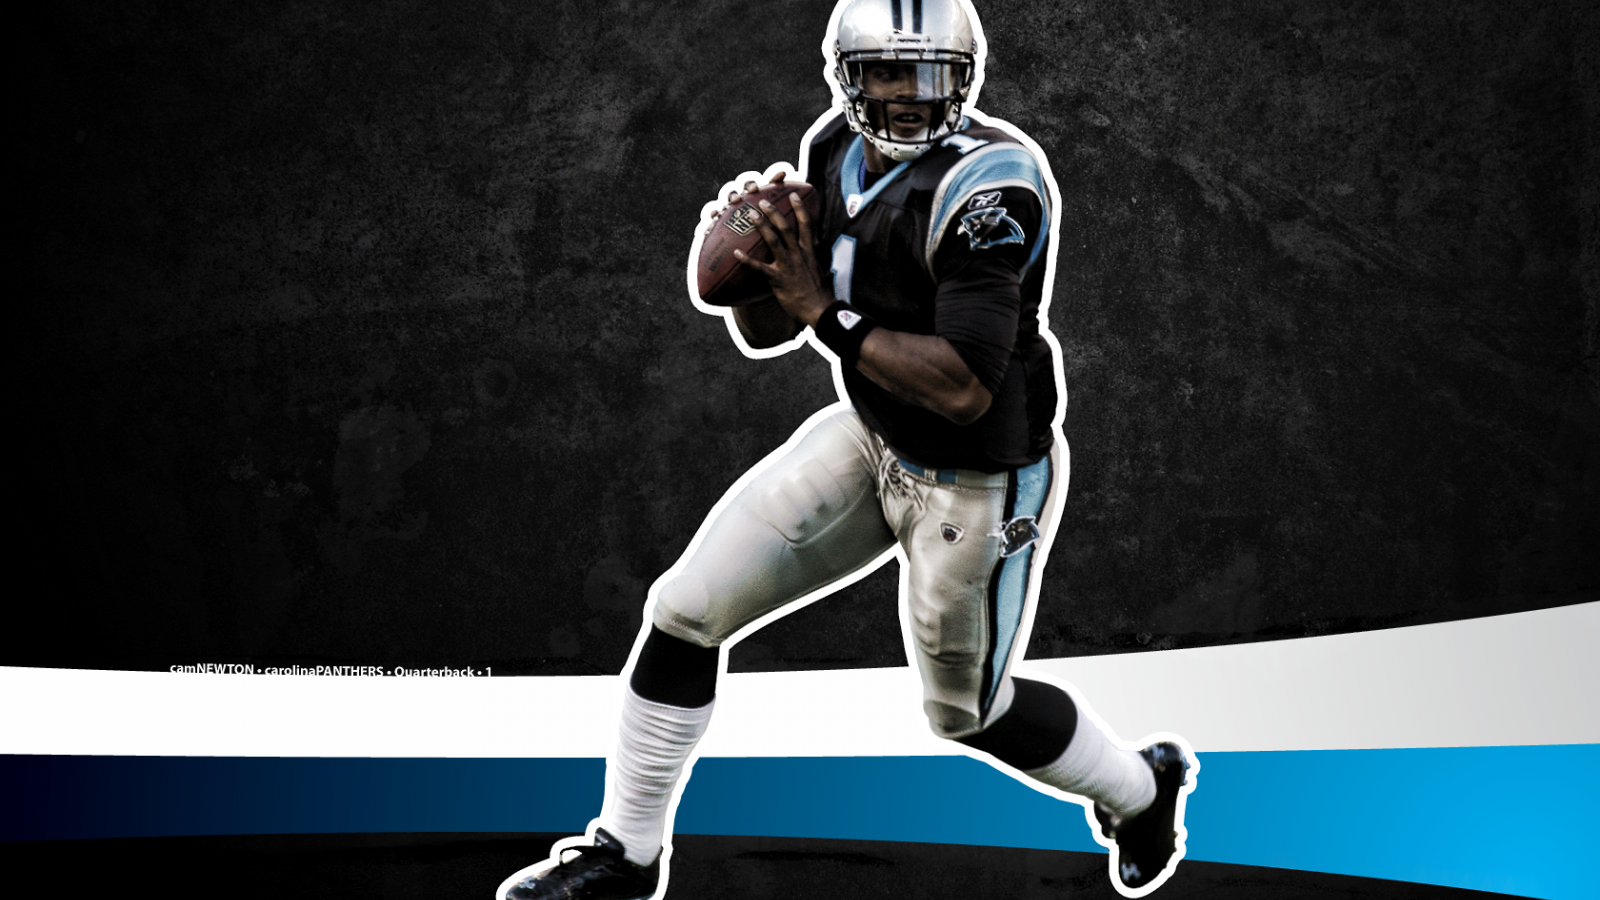 Cam Newton Wallpapers HD Wallpapers